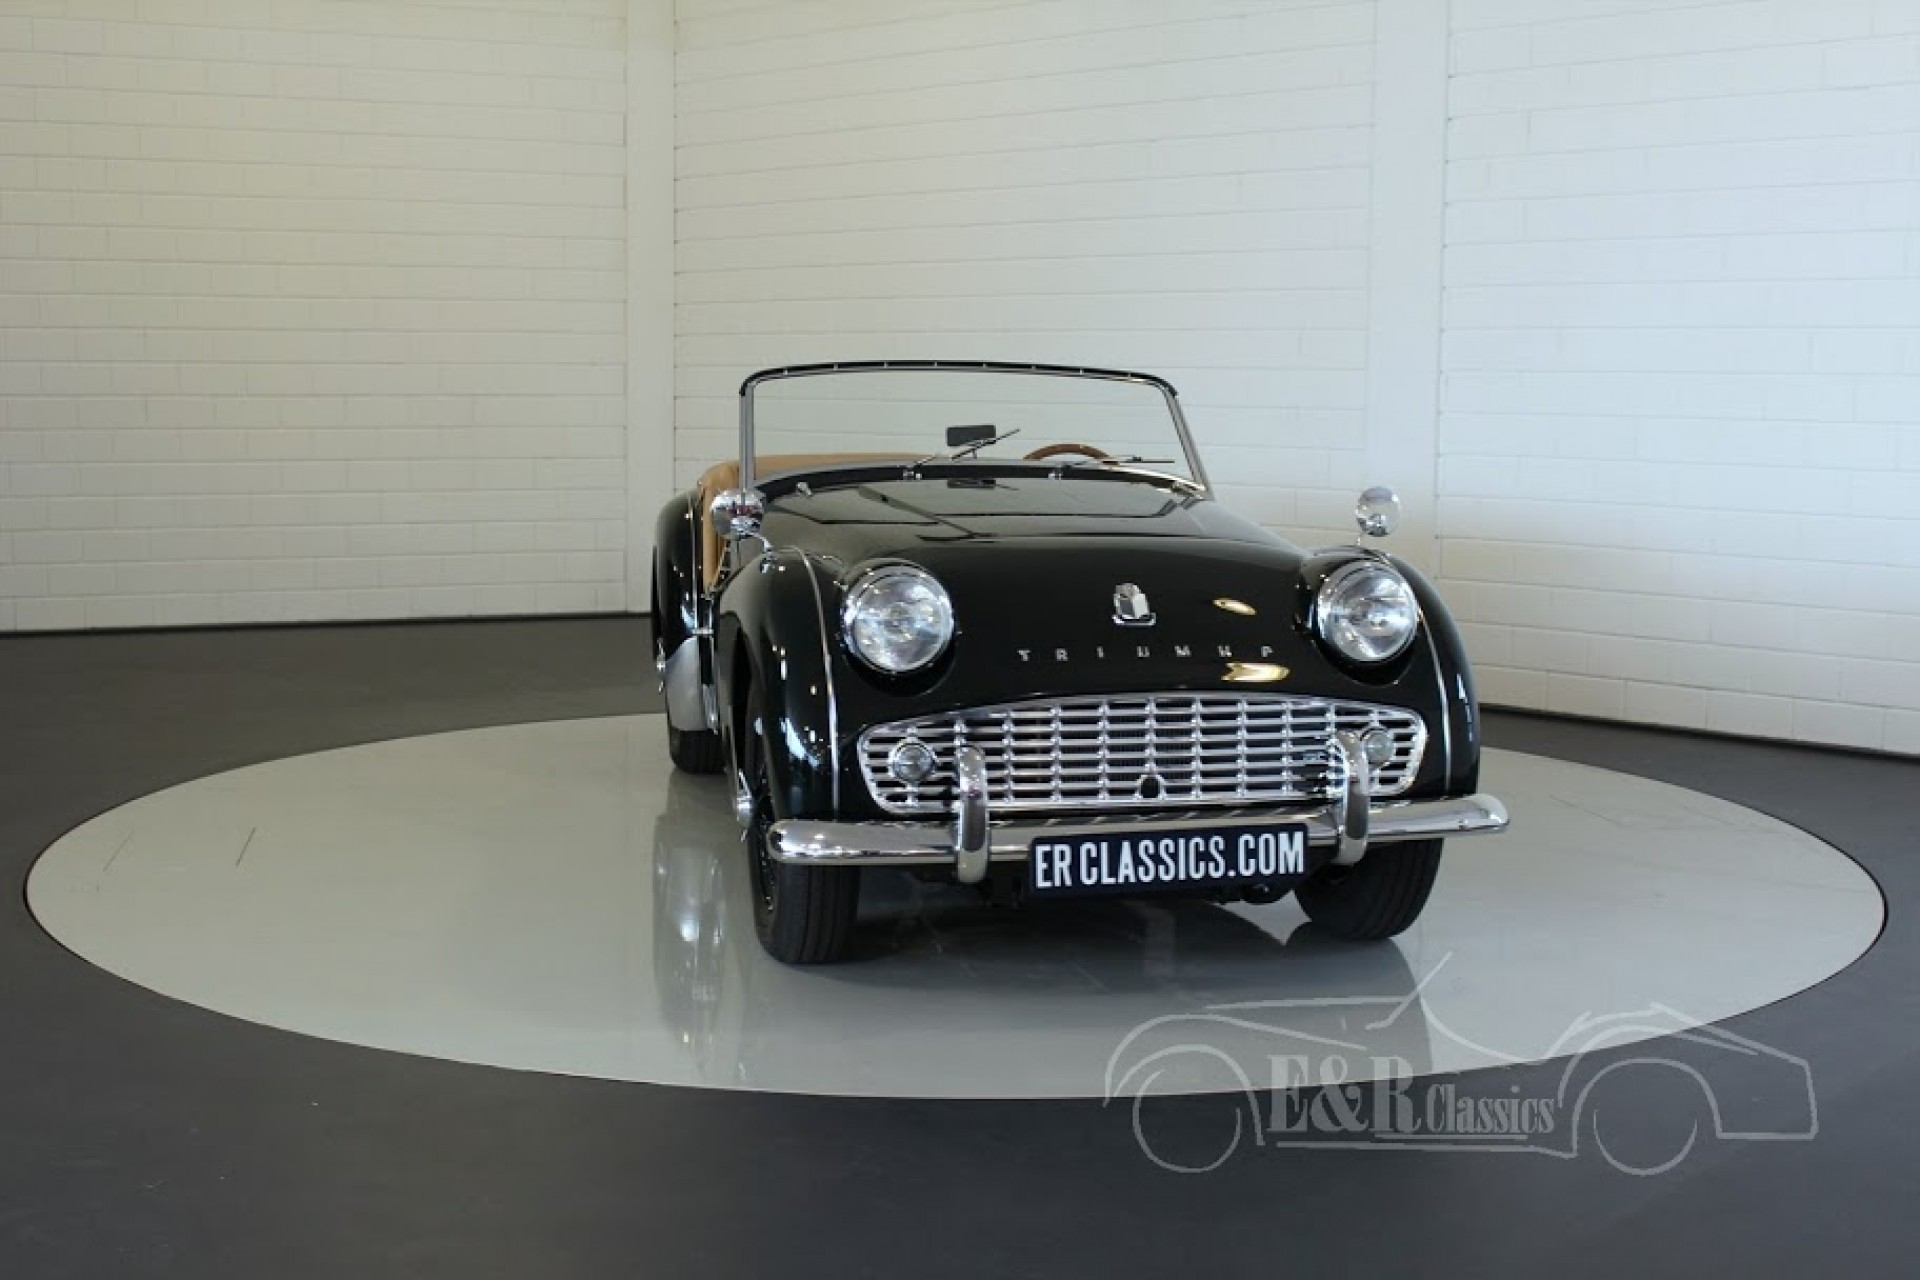 Triumph Classic Cars Triumph Oldtimers For Sale At E R Classic Cars